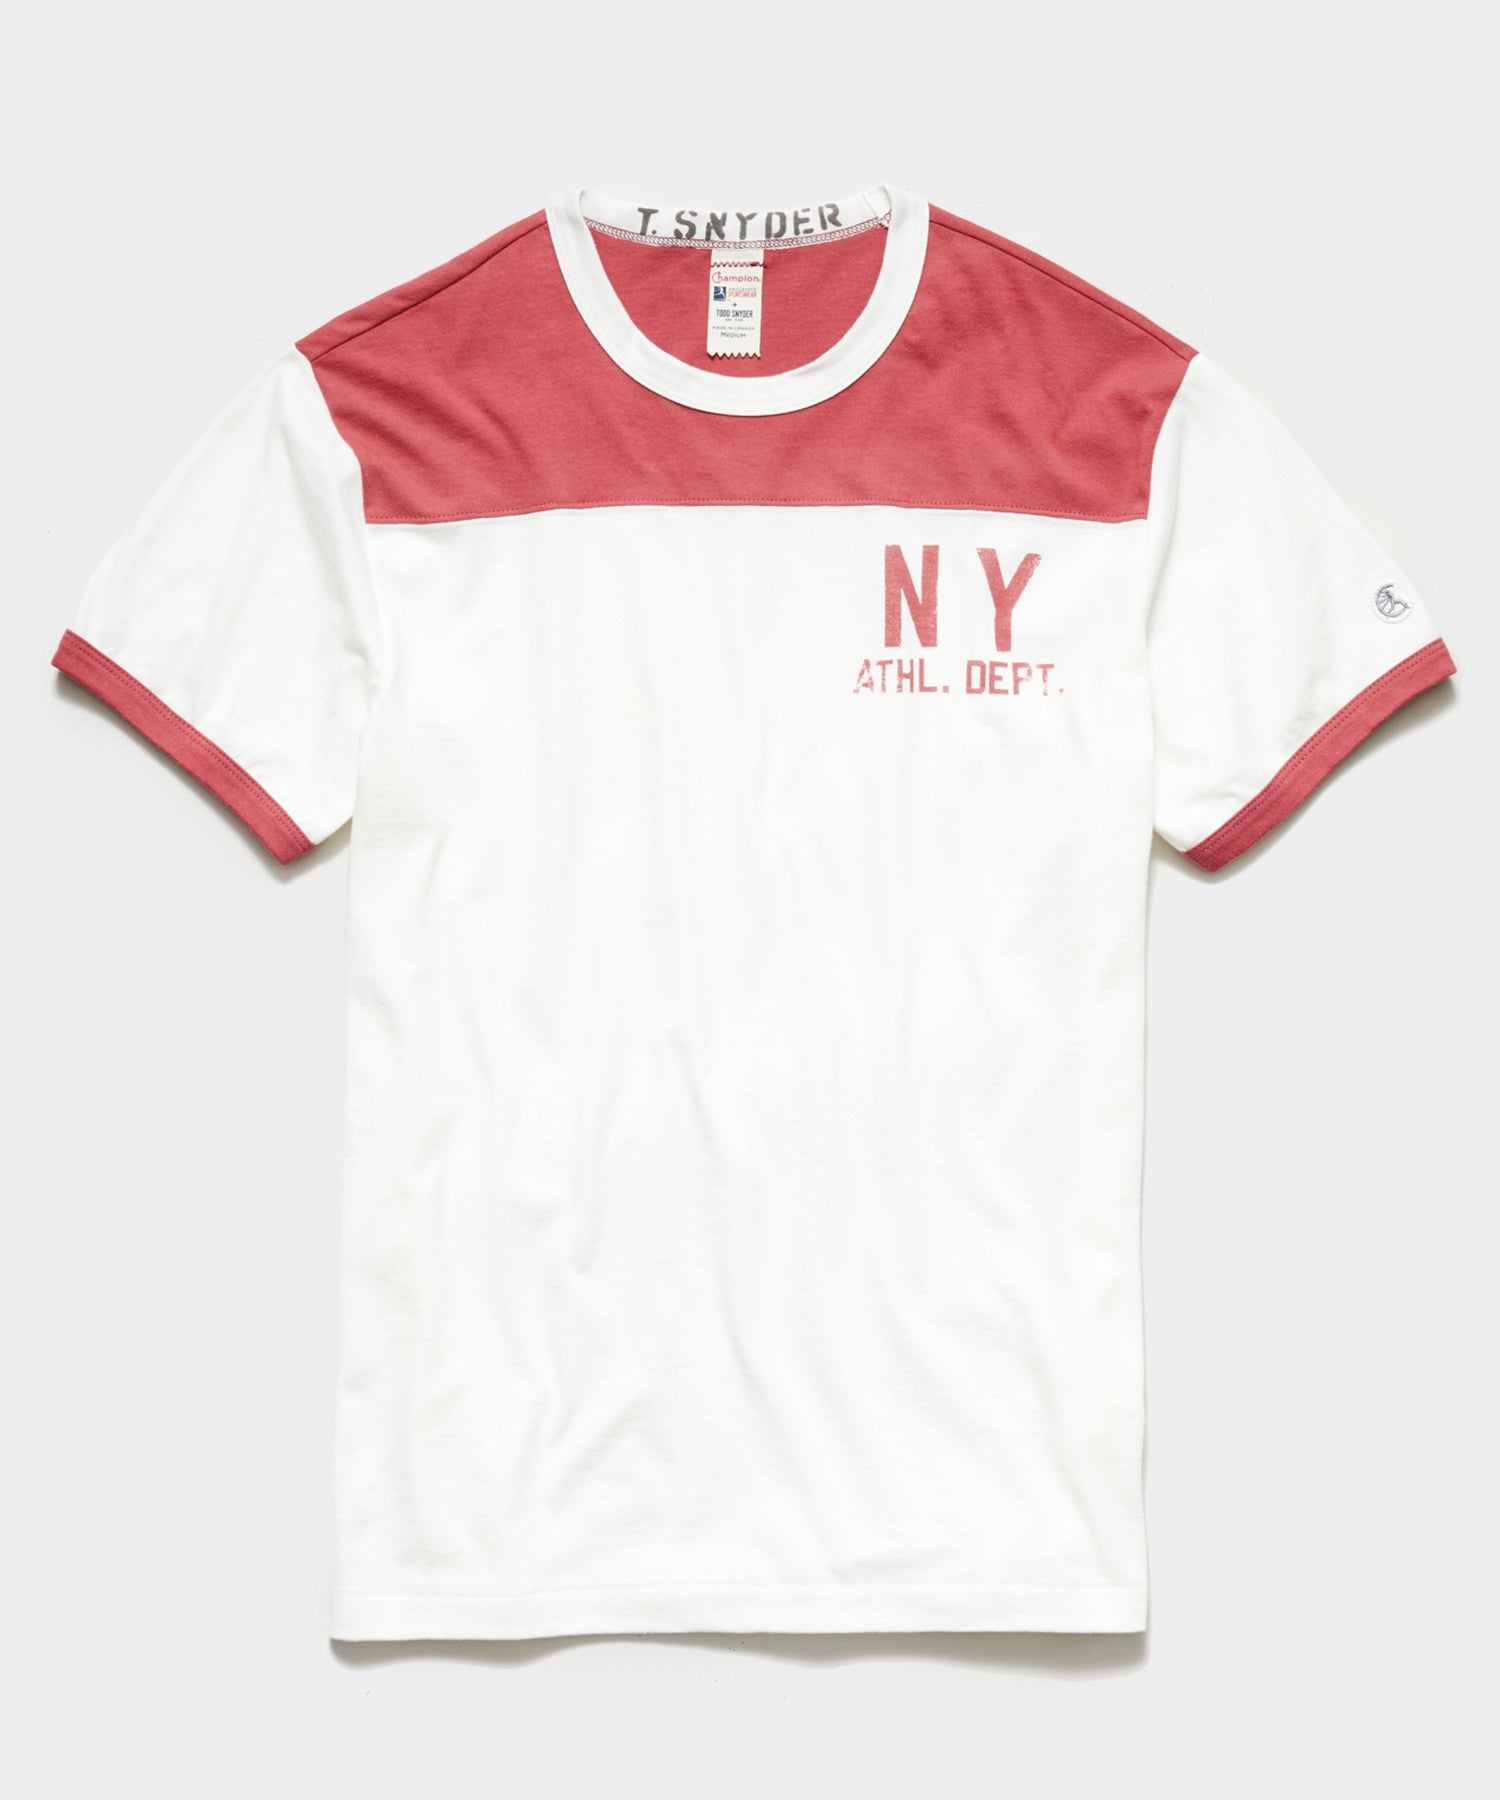 Champion NY Athletic Dept. Tee in Antique White